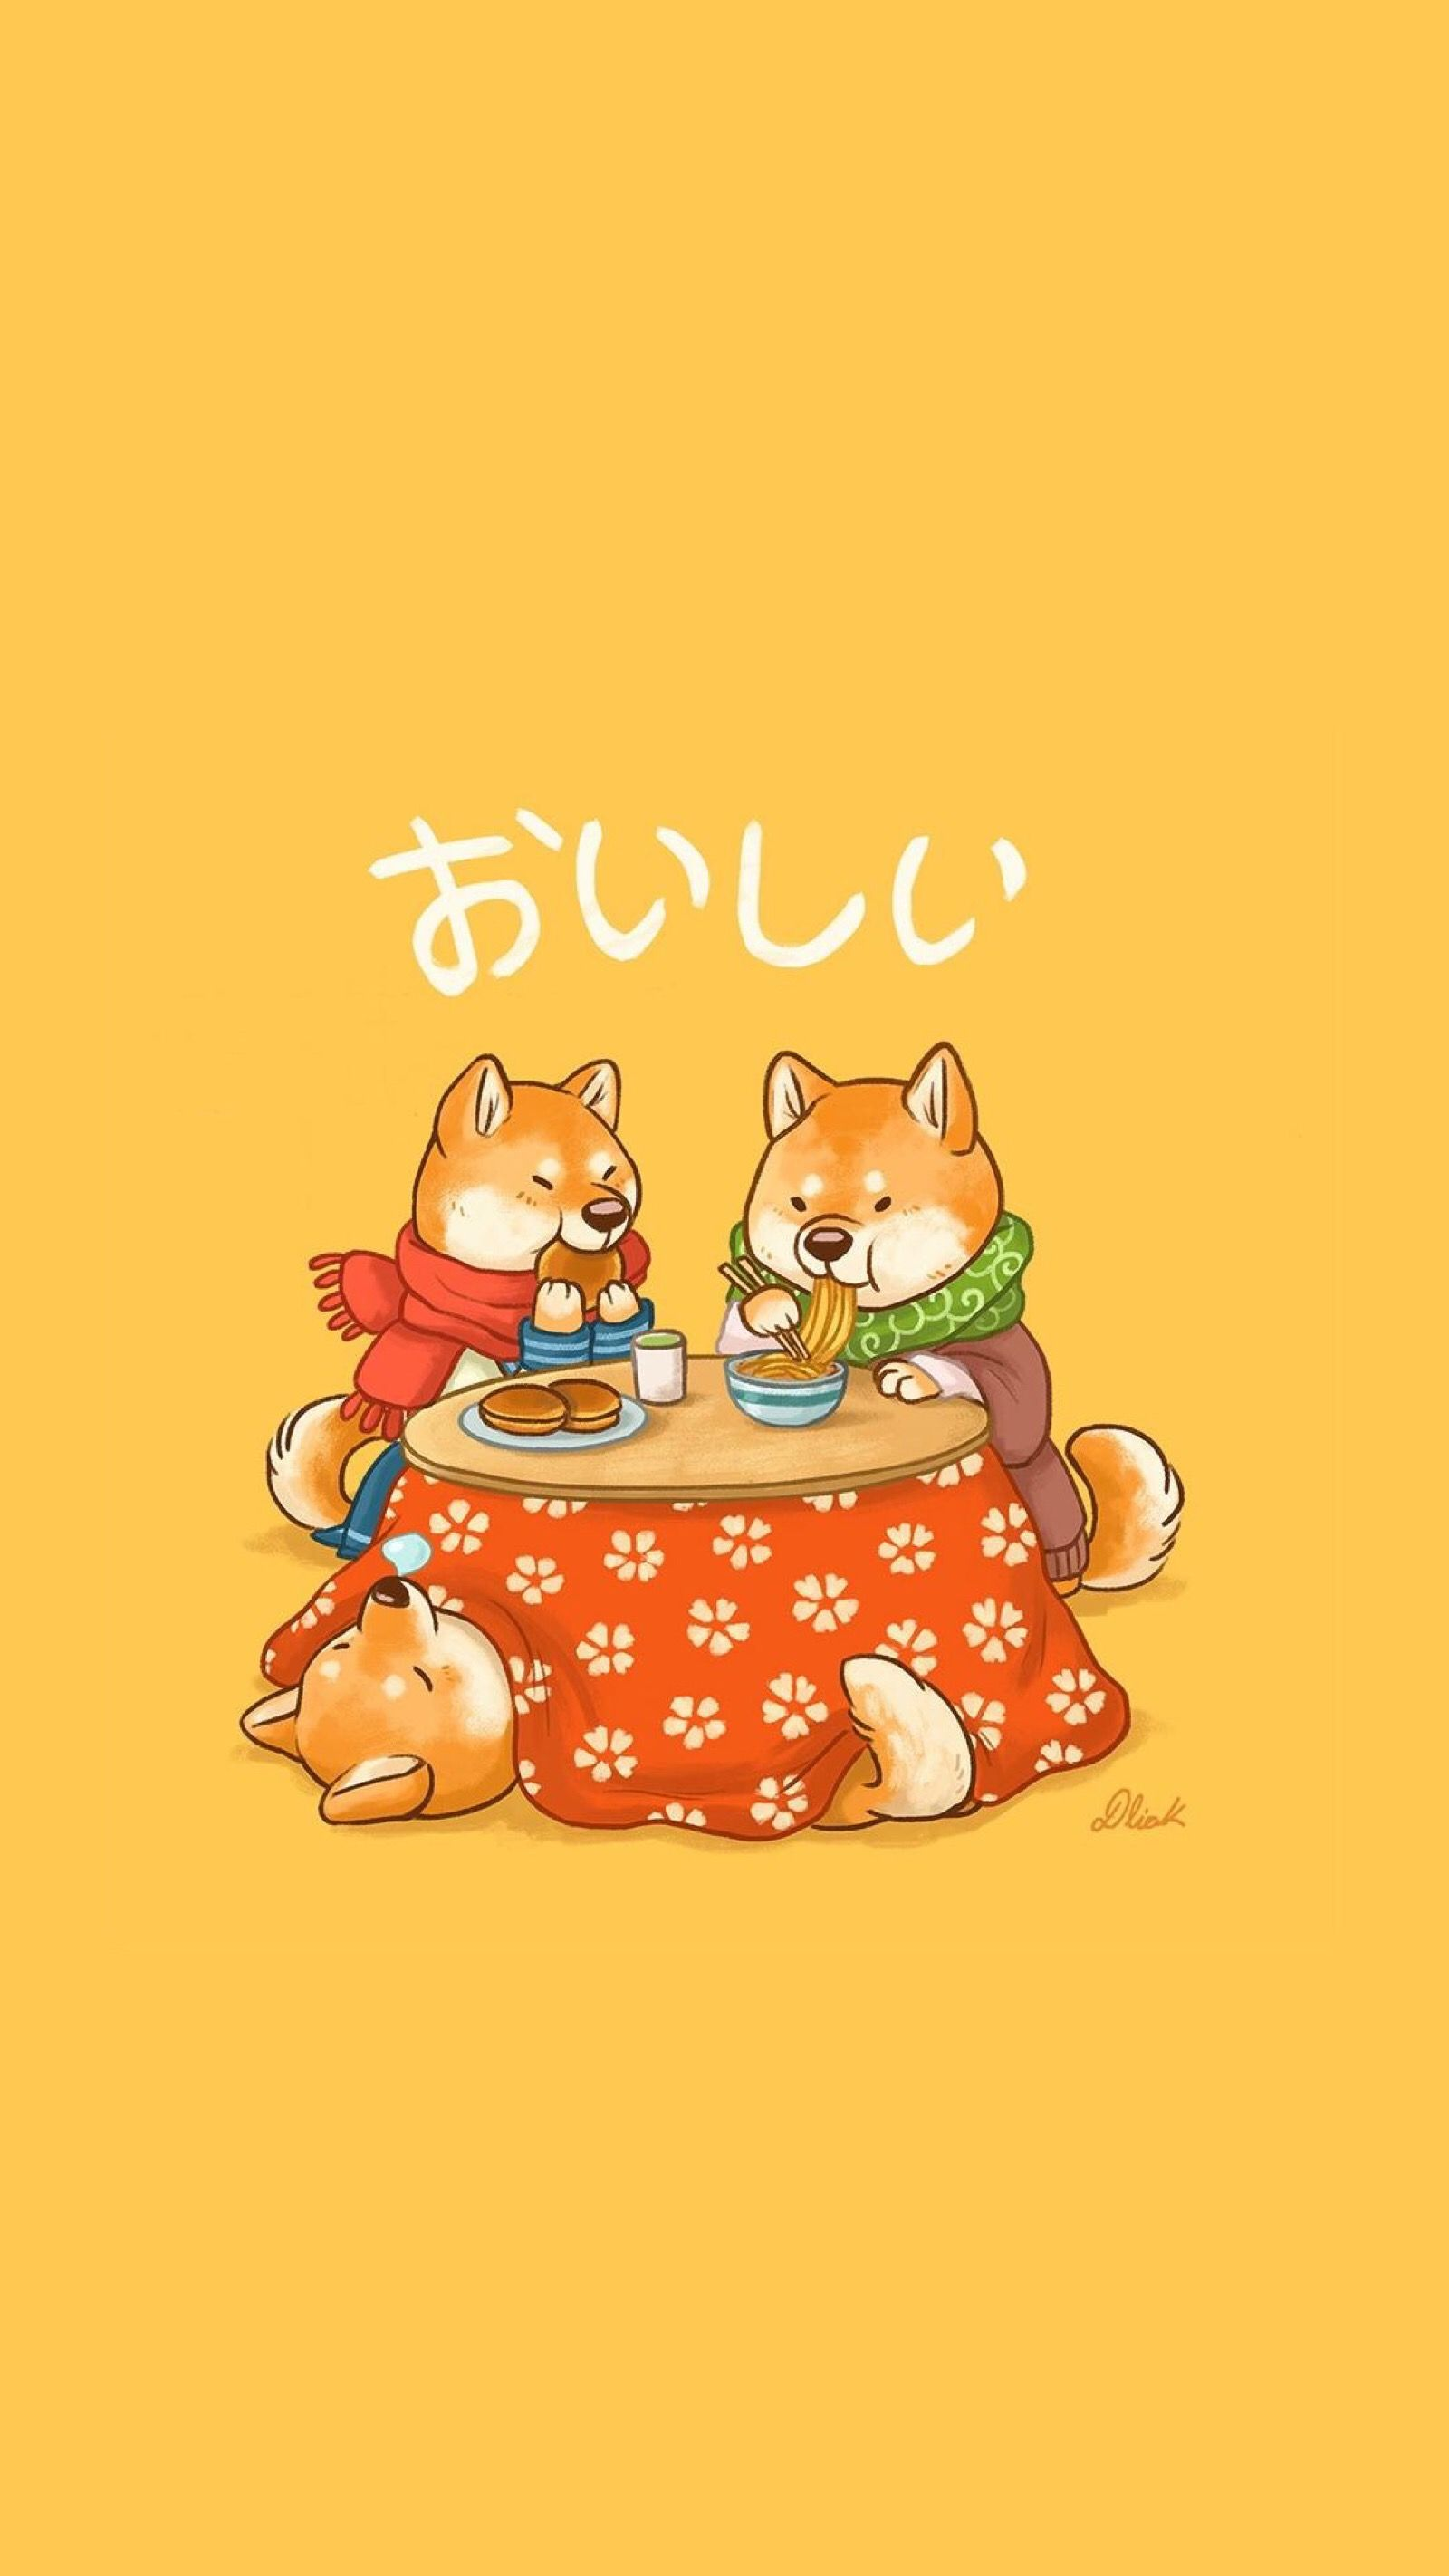 Pin By Amy On Shiba Inu Cute Cartoon Wallpapers Cute Wallpapers Cute Animal Drawings